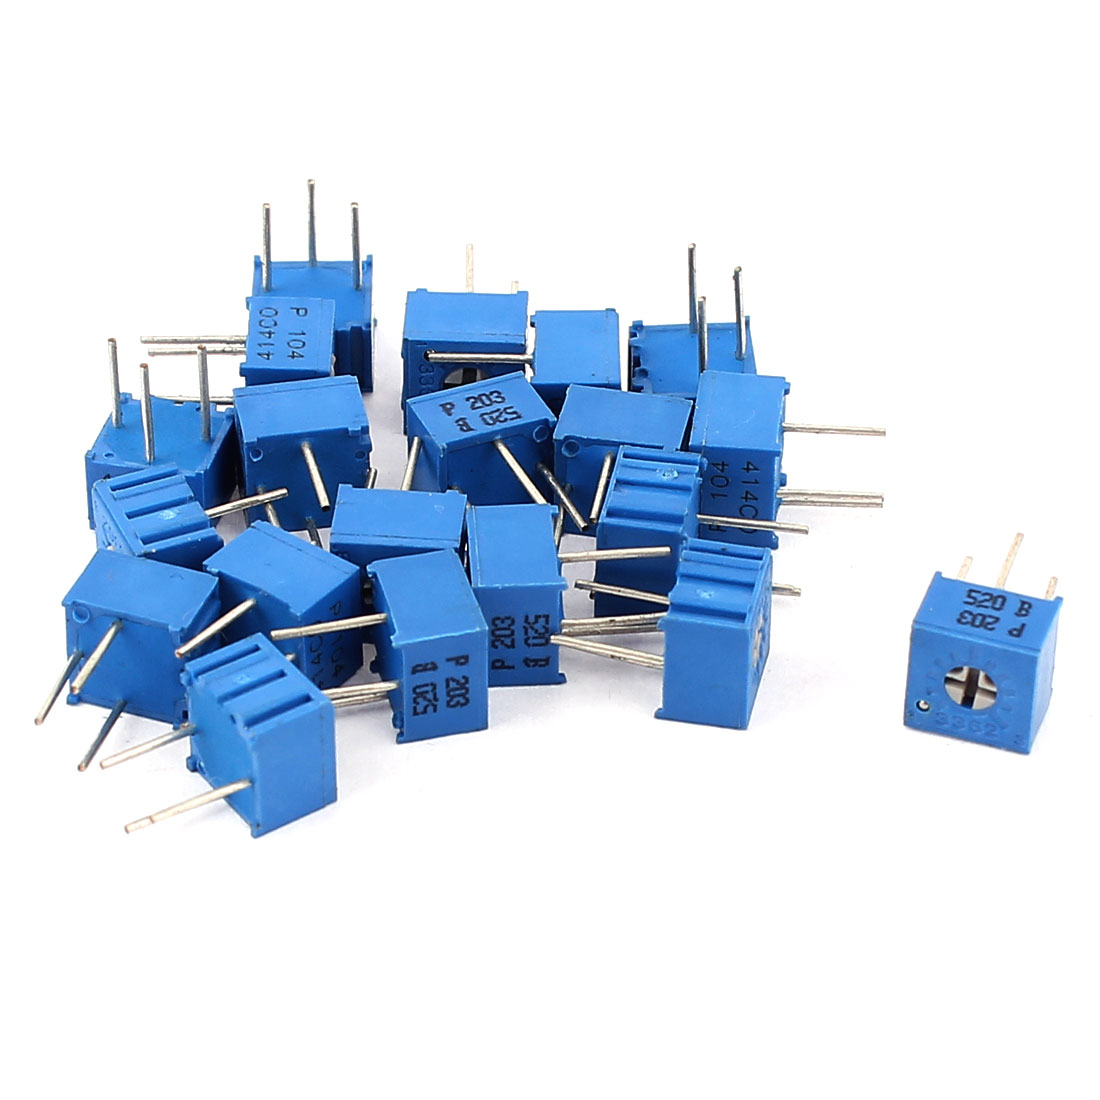 20Pcs Potentiometer Trimmer Variable Resistor 3362P-203 3362P-104